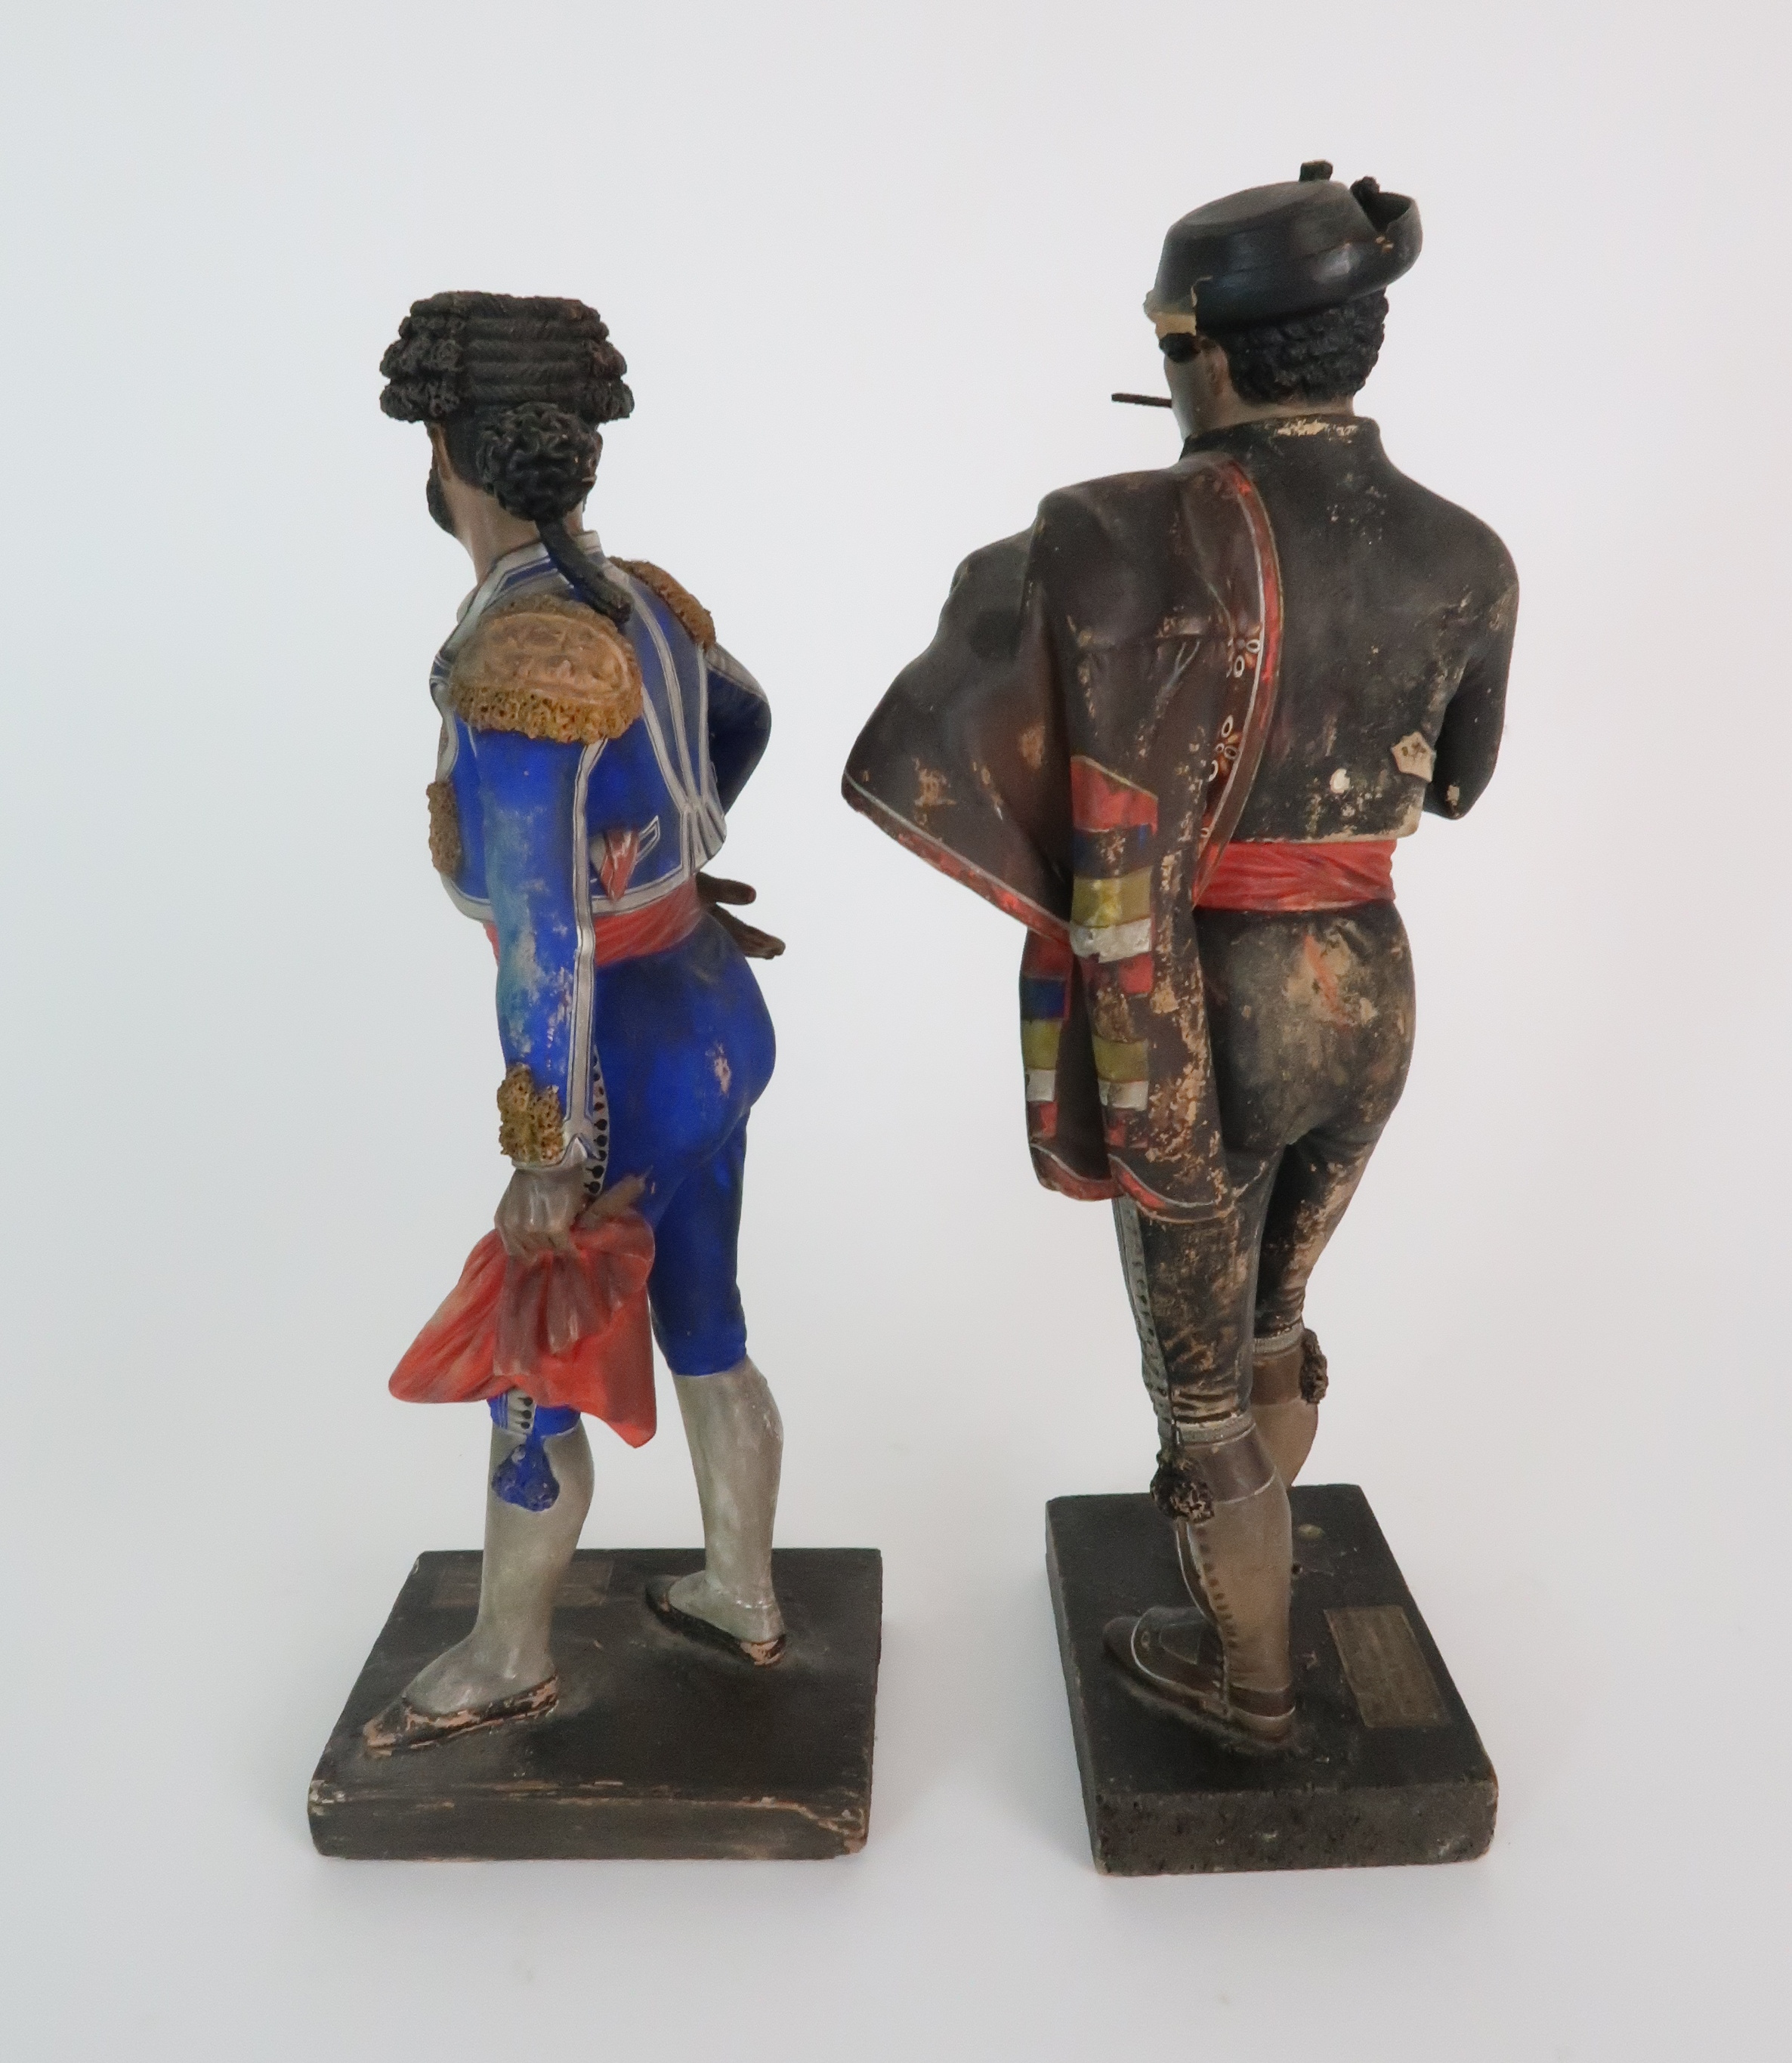 JOSE CUBERO, MALAGA - A PAIR OF MID 19TH CENTURY COLD PAINTED TERRACOTTA FIGURES one a matador, - Image 3 of 8